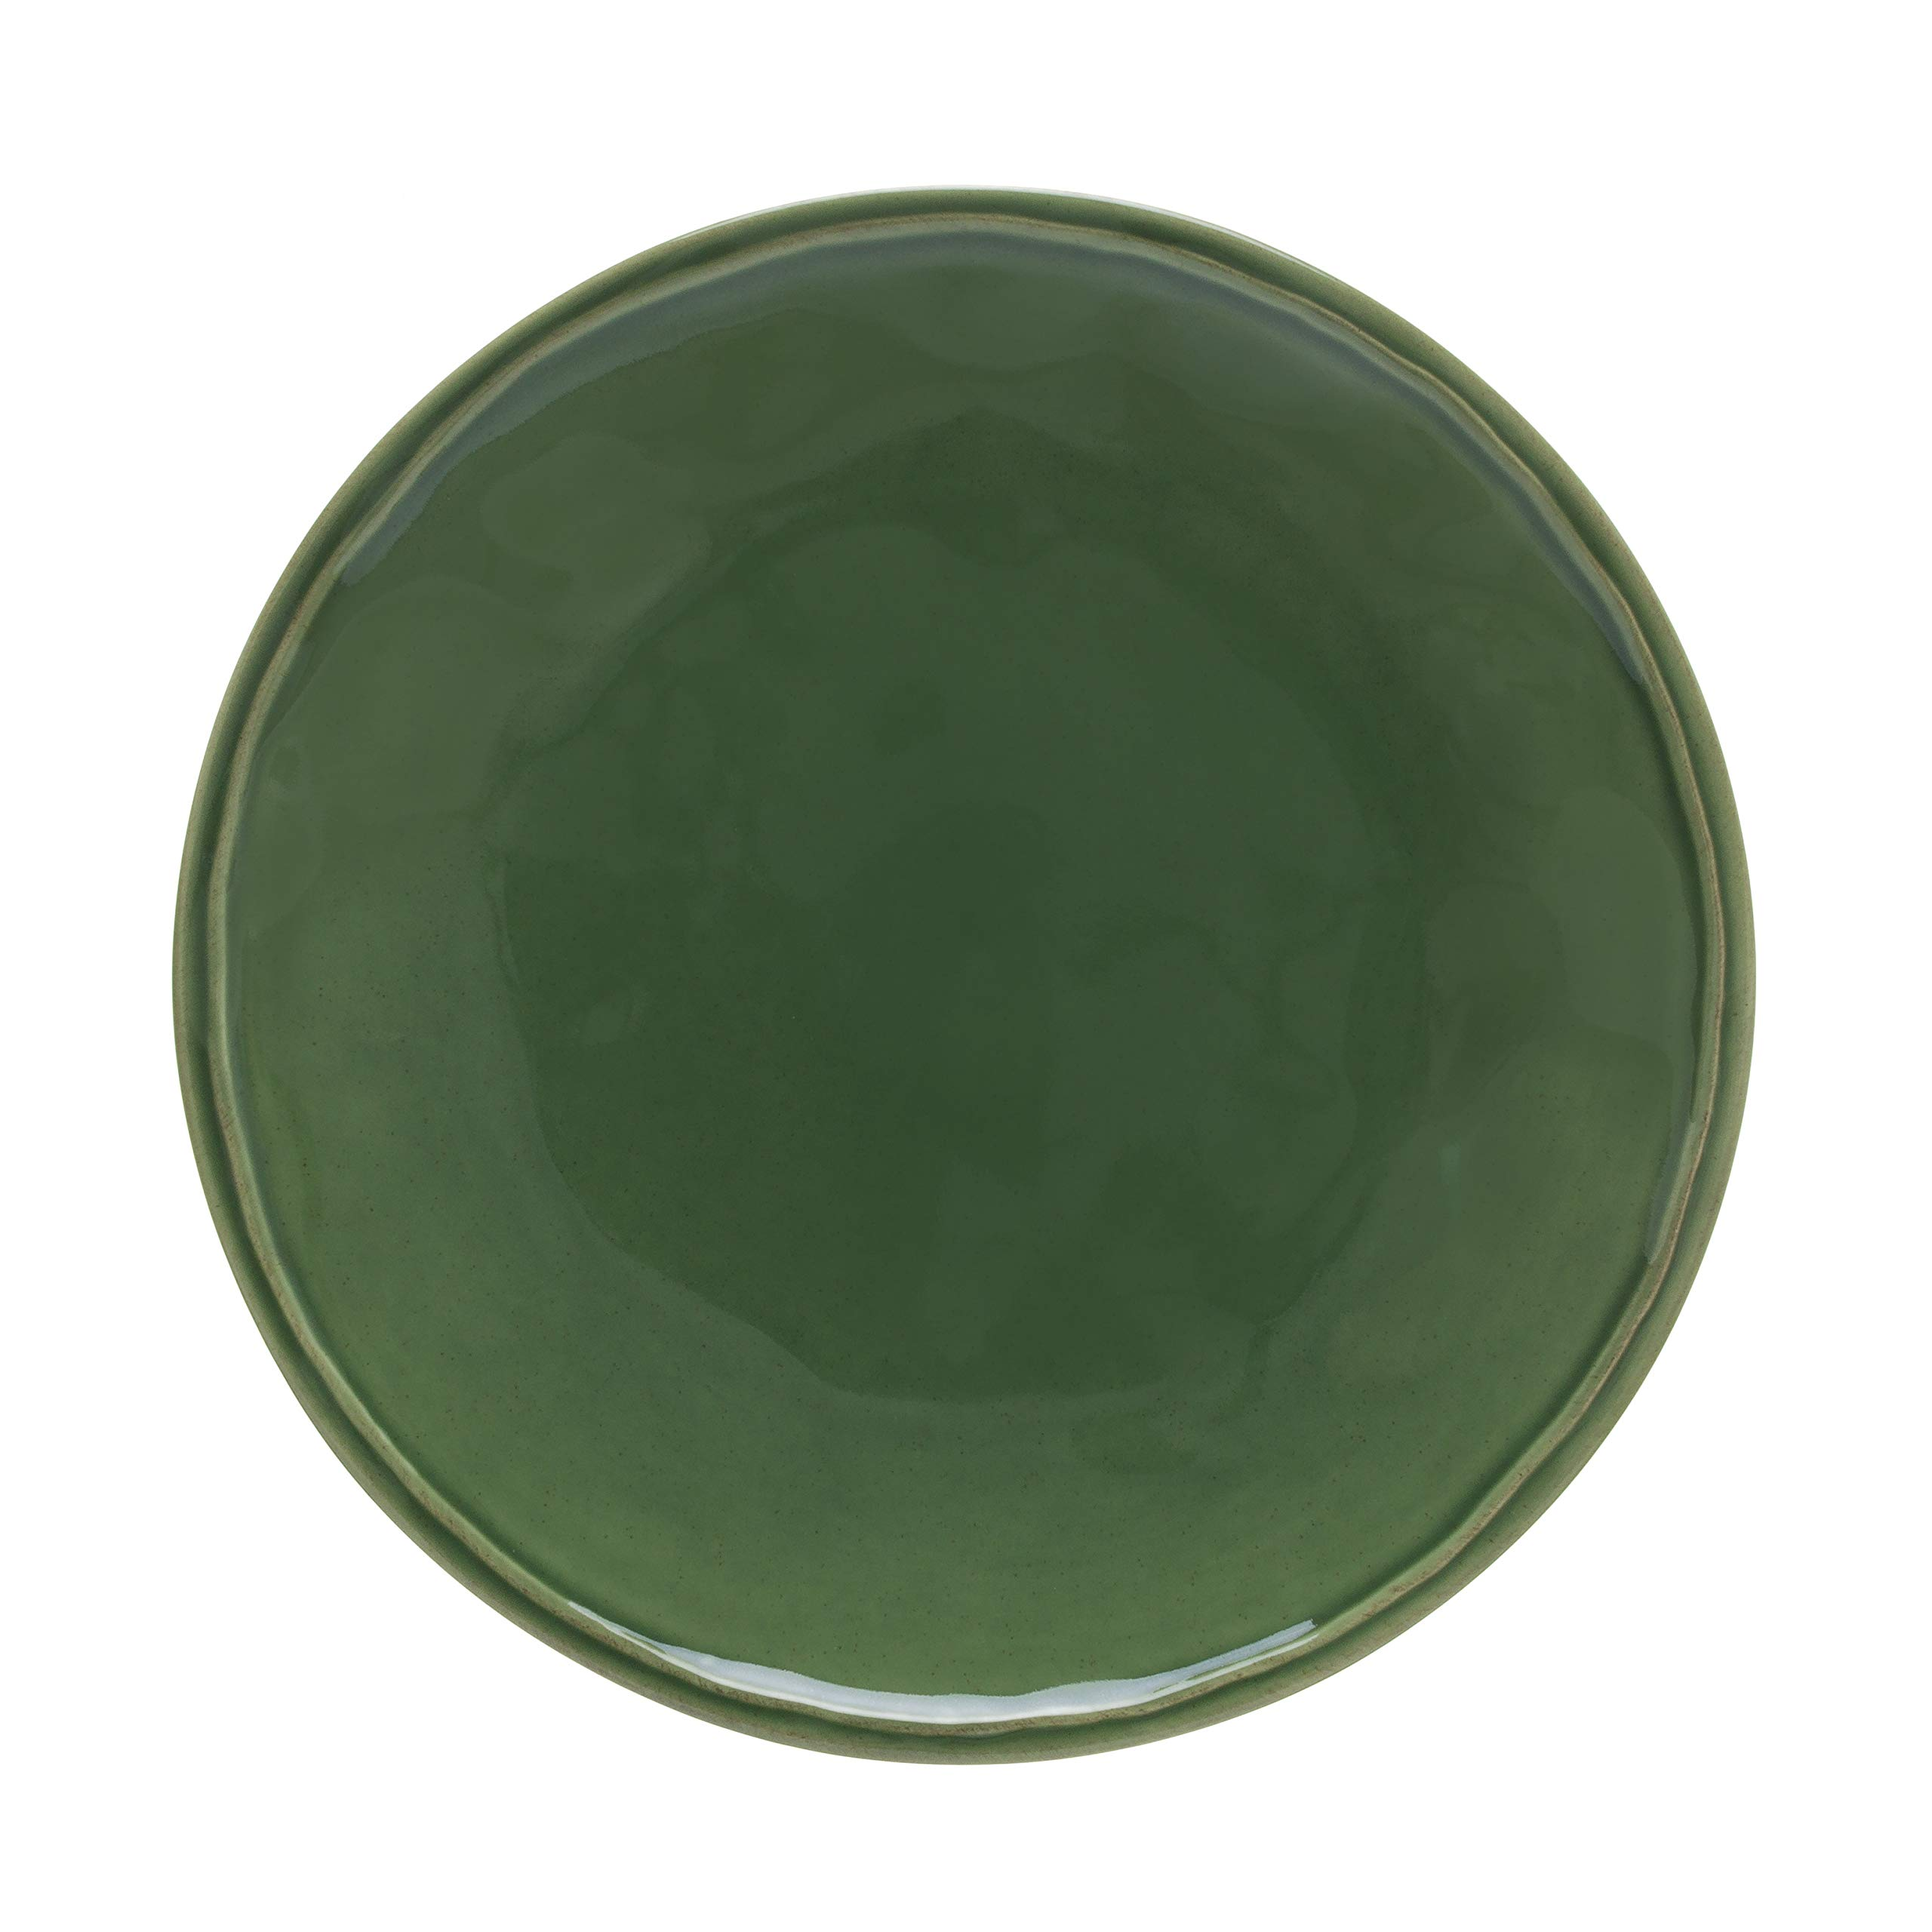 "Casafina Stoneware Ceramic Dish Fontana Collection Dinner Plate, 11.25"" (Forest Green)"